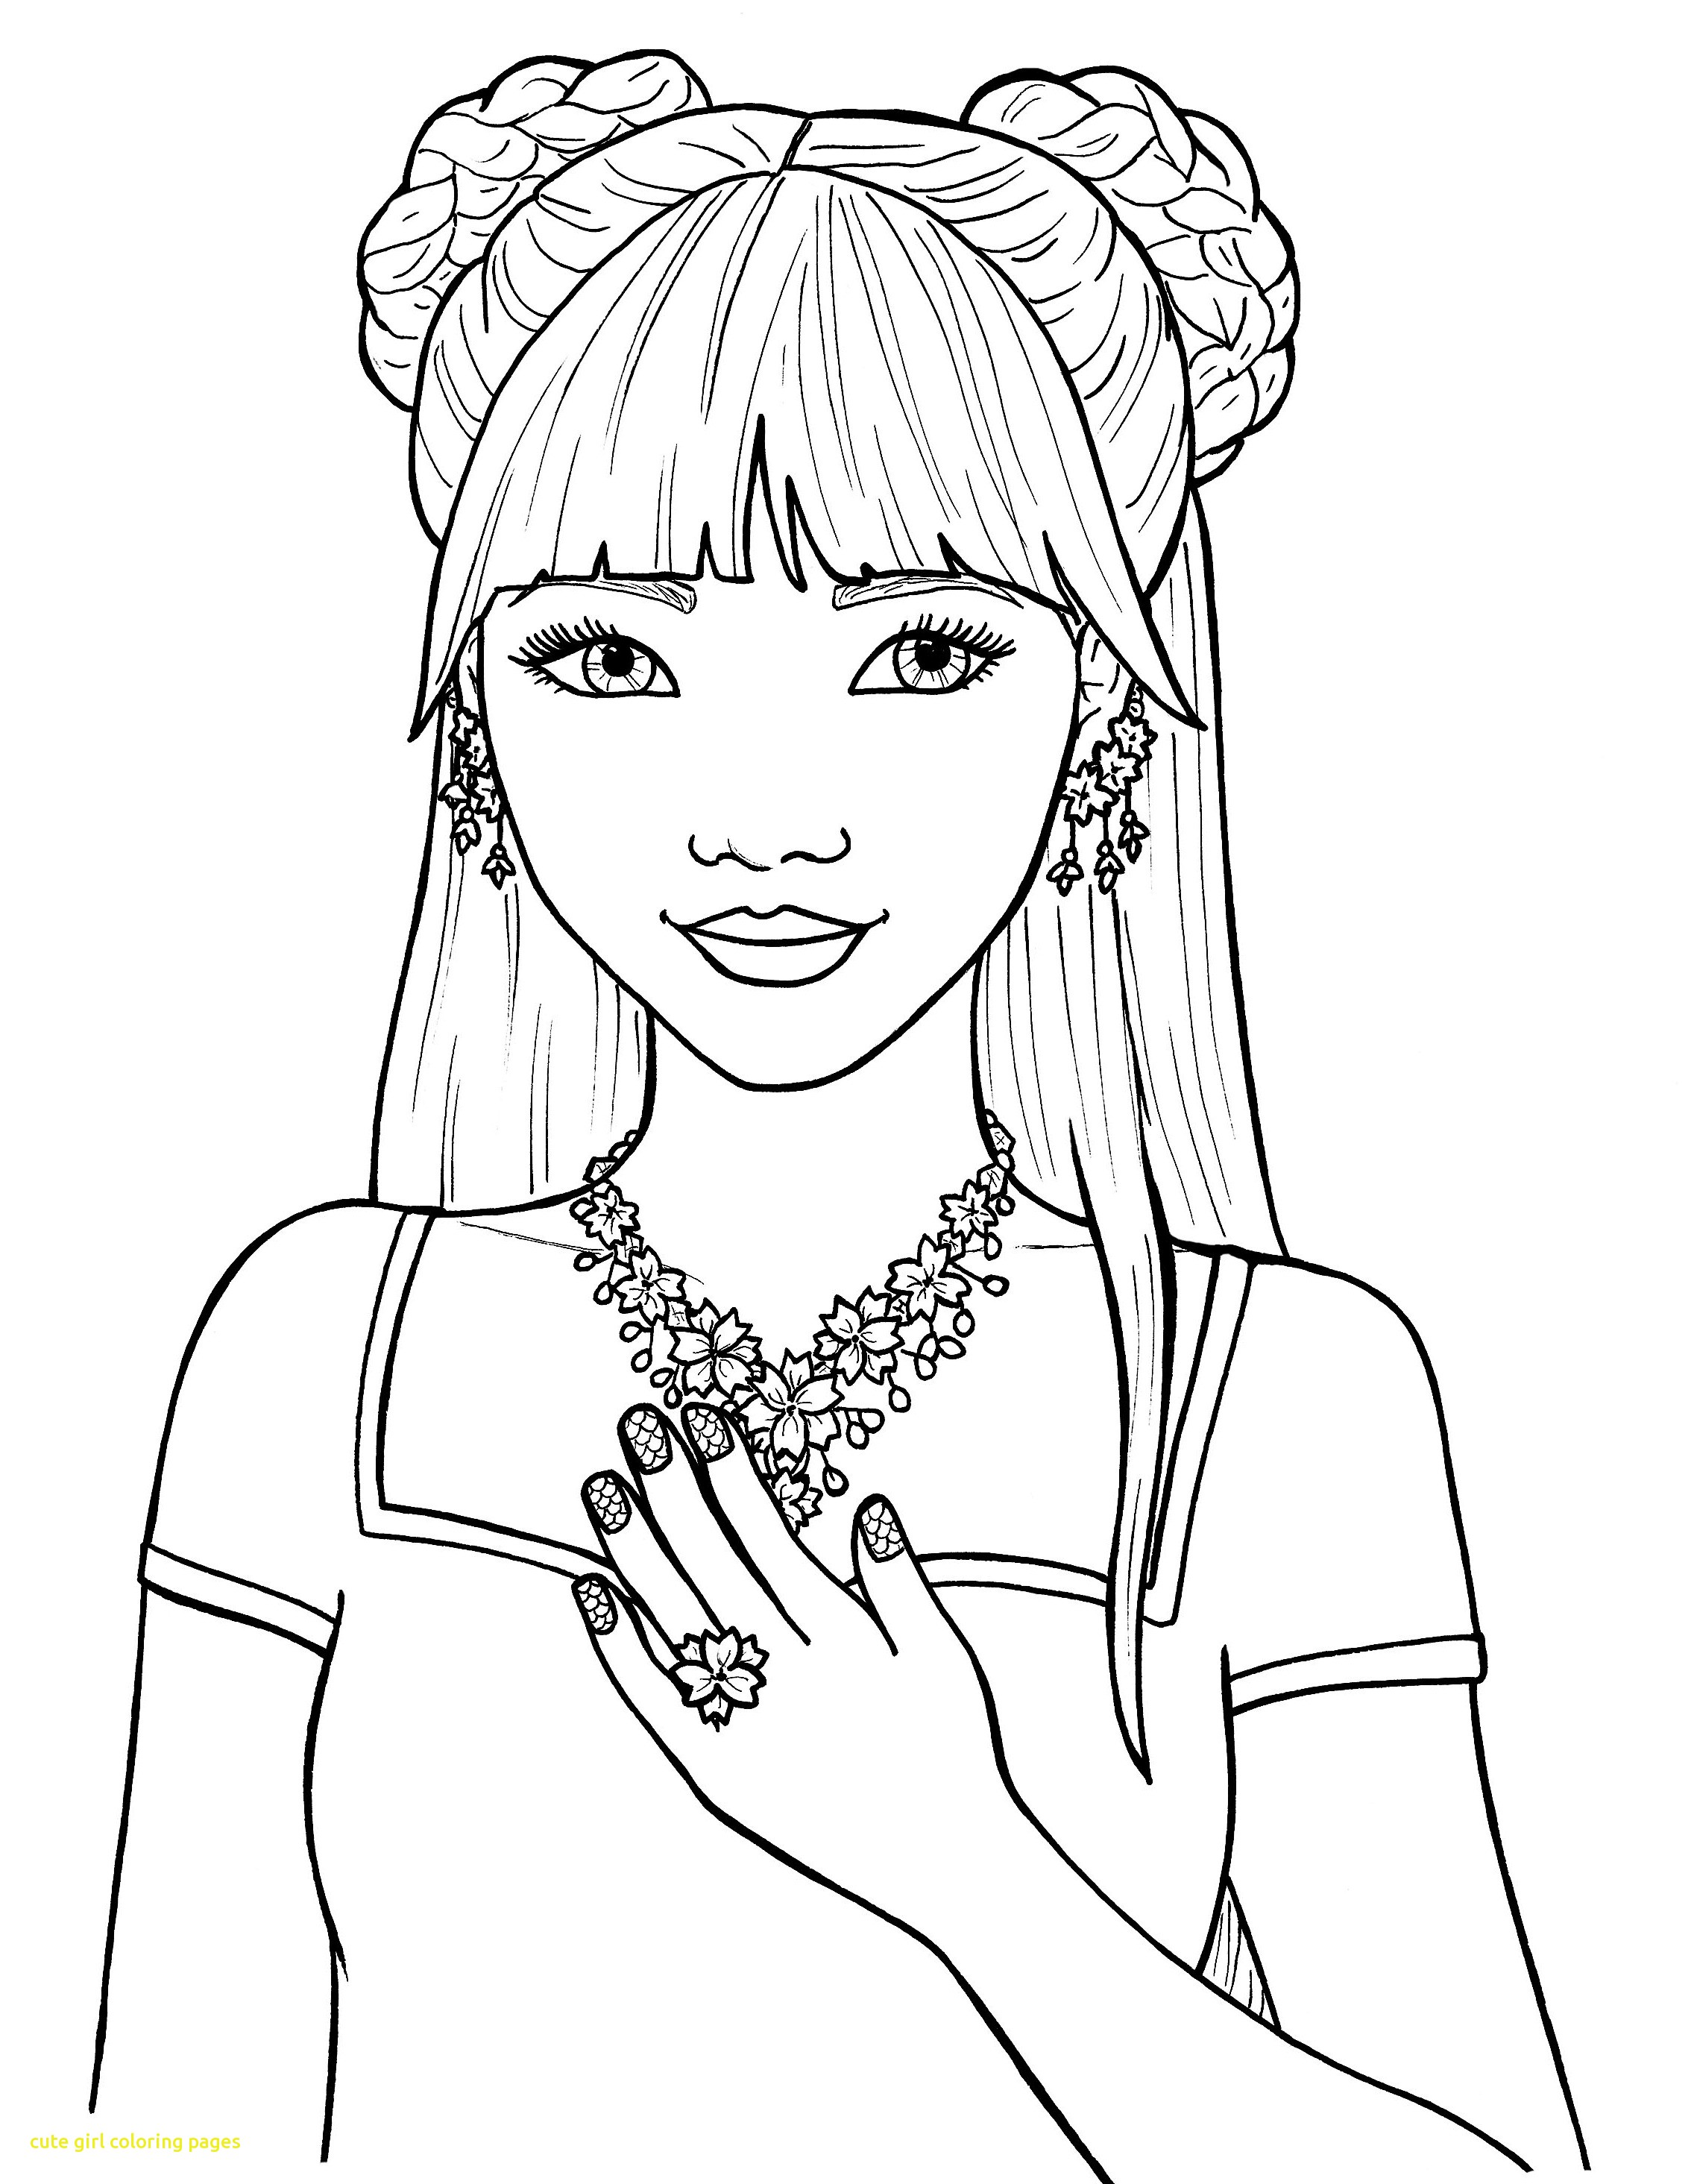 coloring sheets for girls coloring pages for girls best coloring pages for kids sheets girls coloring for